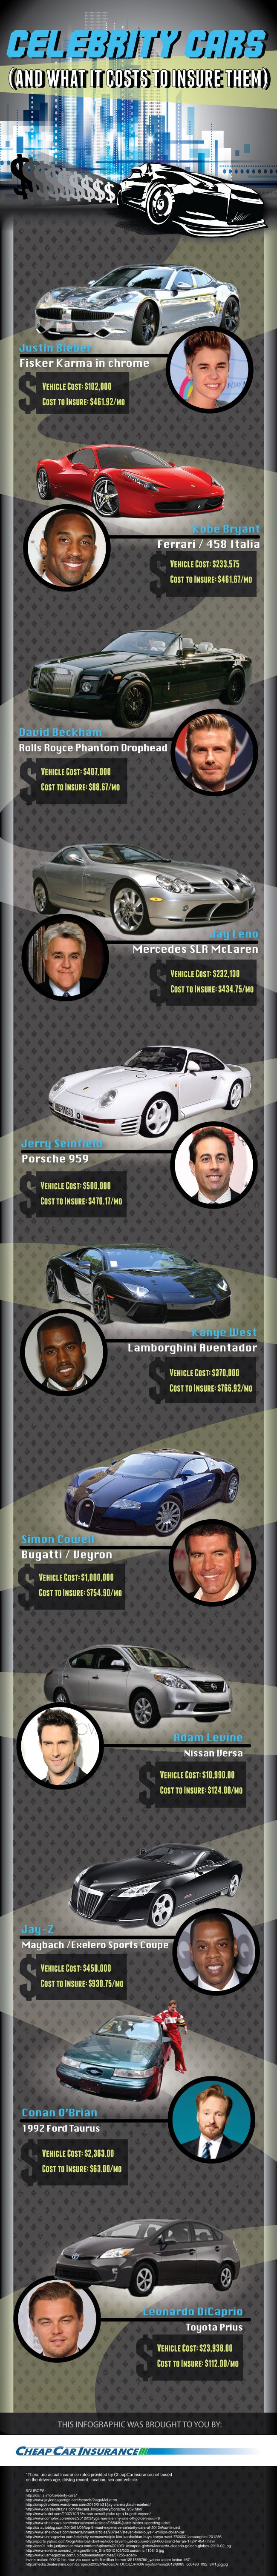 Celebs cars and how much they pay to insure them. #Infographic